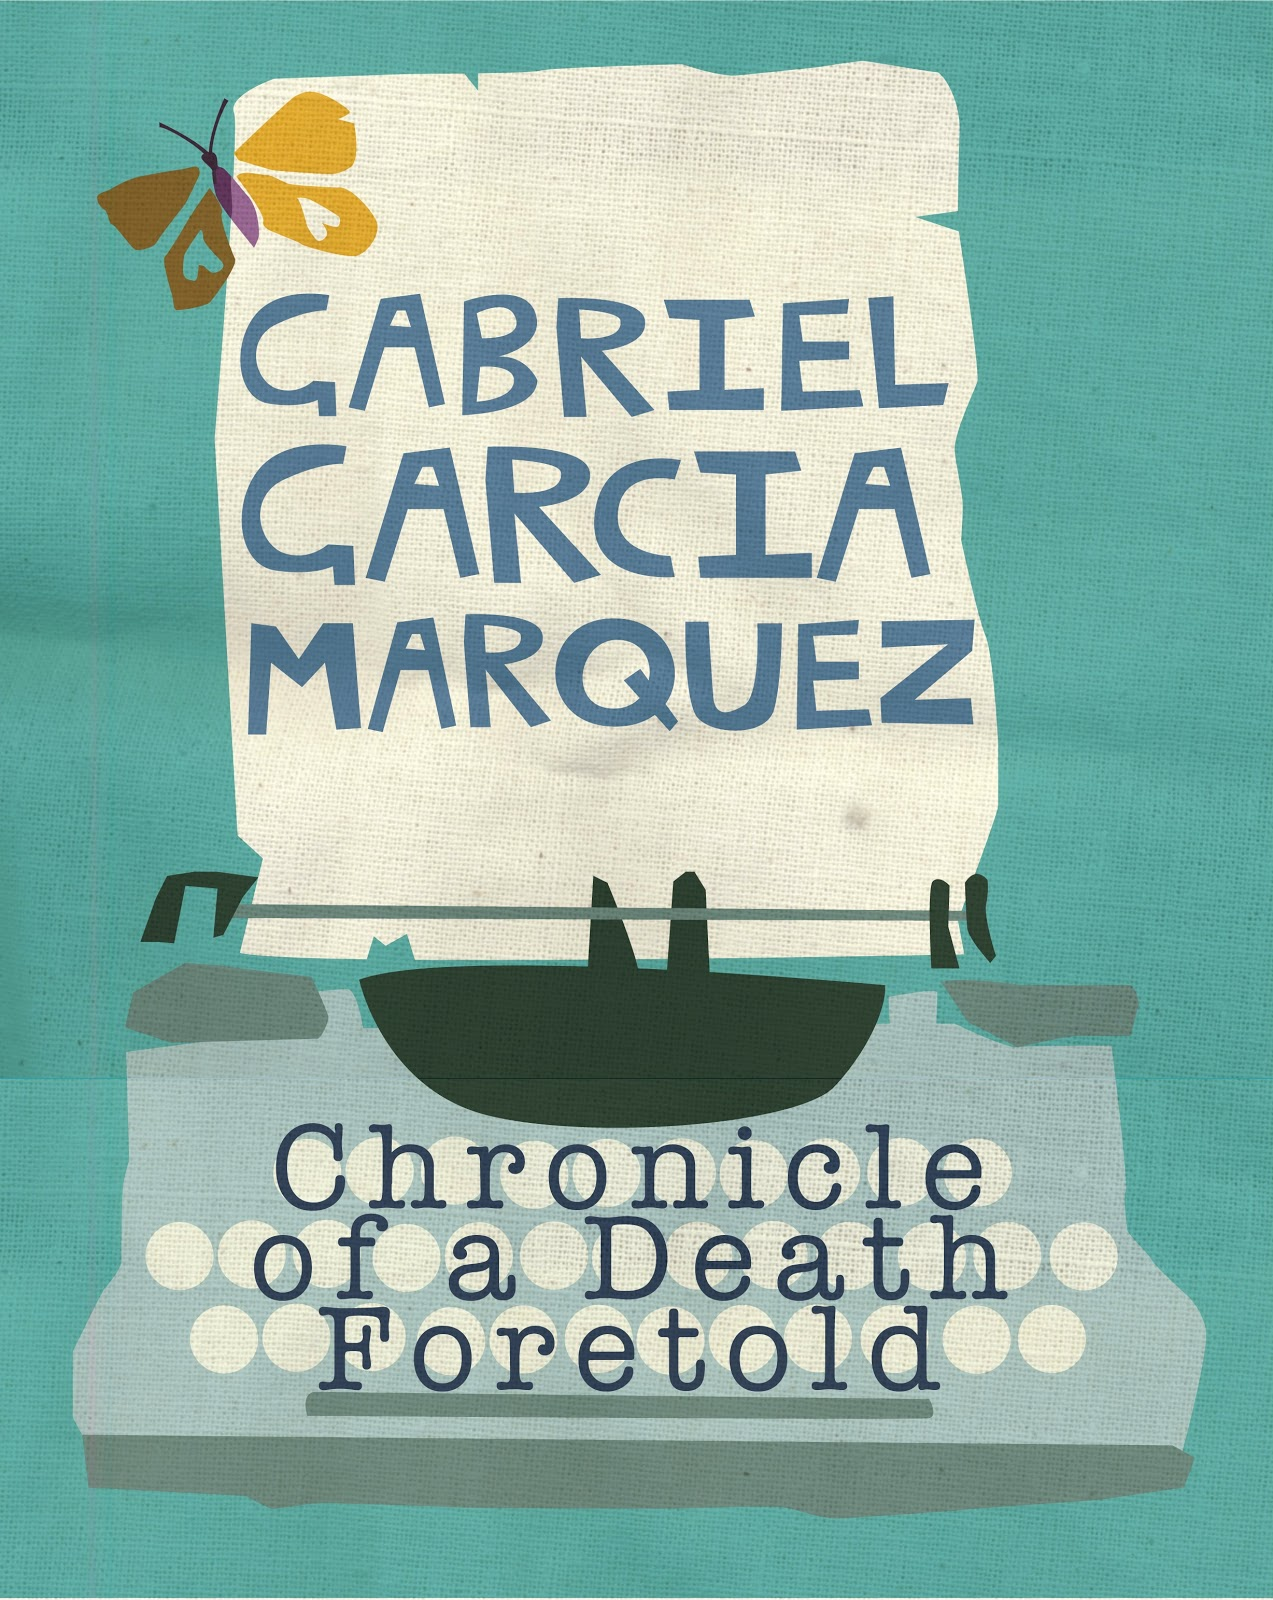 essays on chronicle of a death foretold Chronicle of a death foretold (spanish: crónica de una muerte anunciada) is a novella by gabriel garcía márquez, published in 1981it tells, in the form of a pseudo-journalistic reconstruction, the story of the murder of santiago nasar by the two vicario brothers.